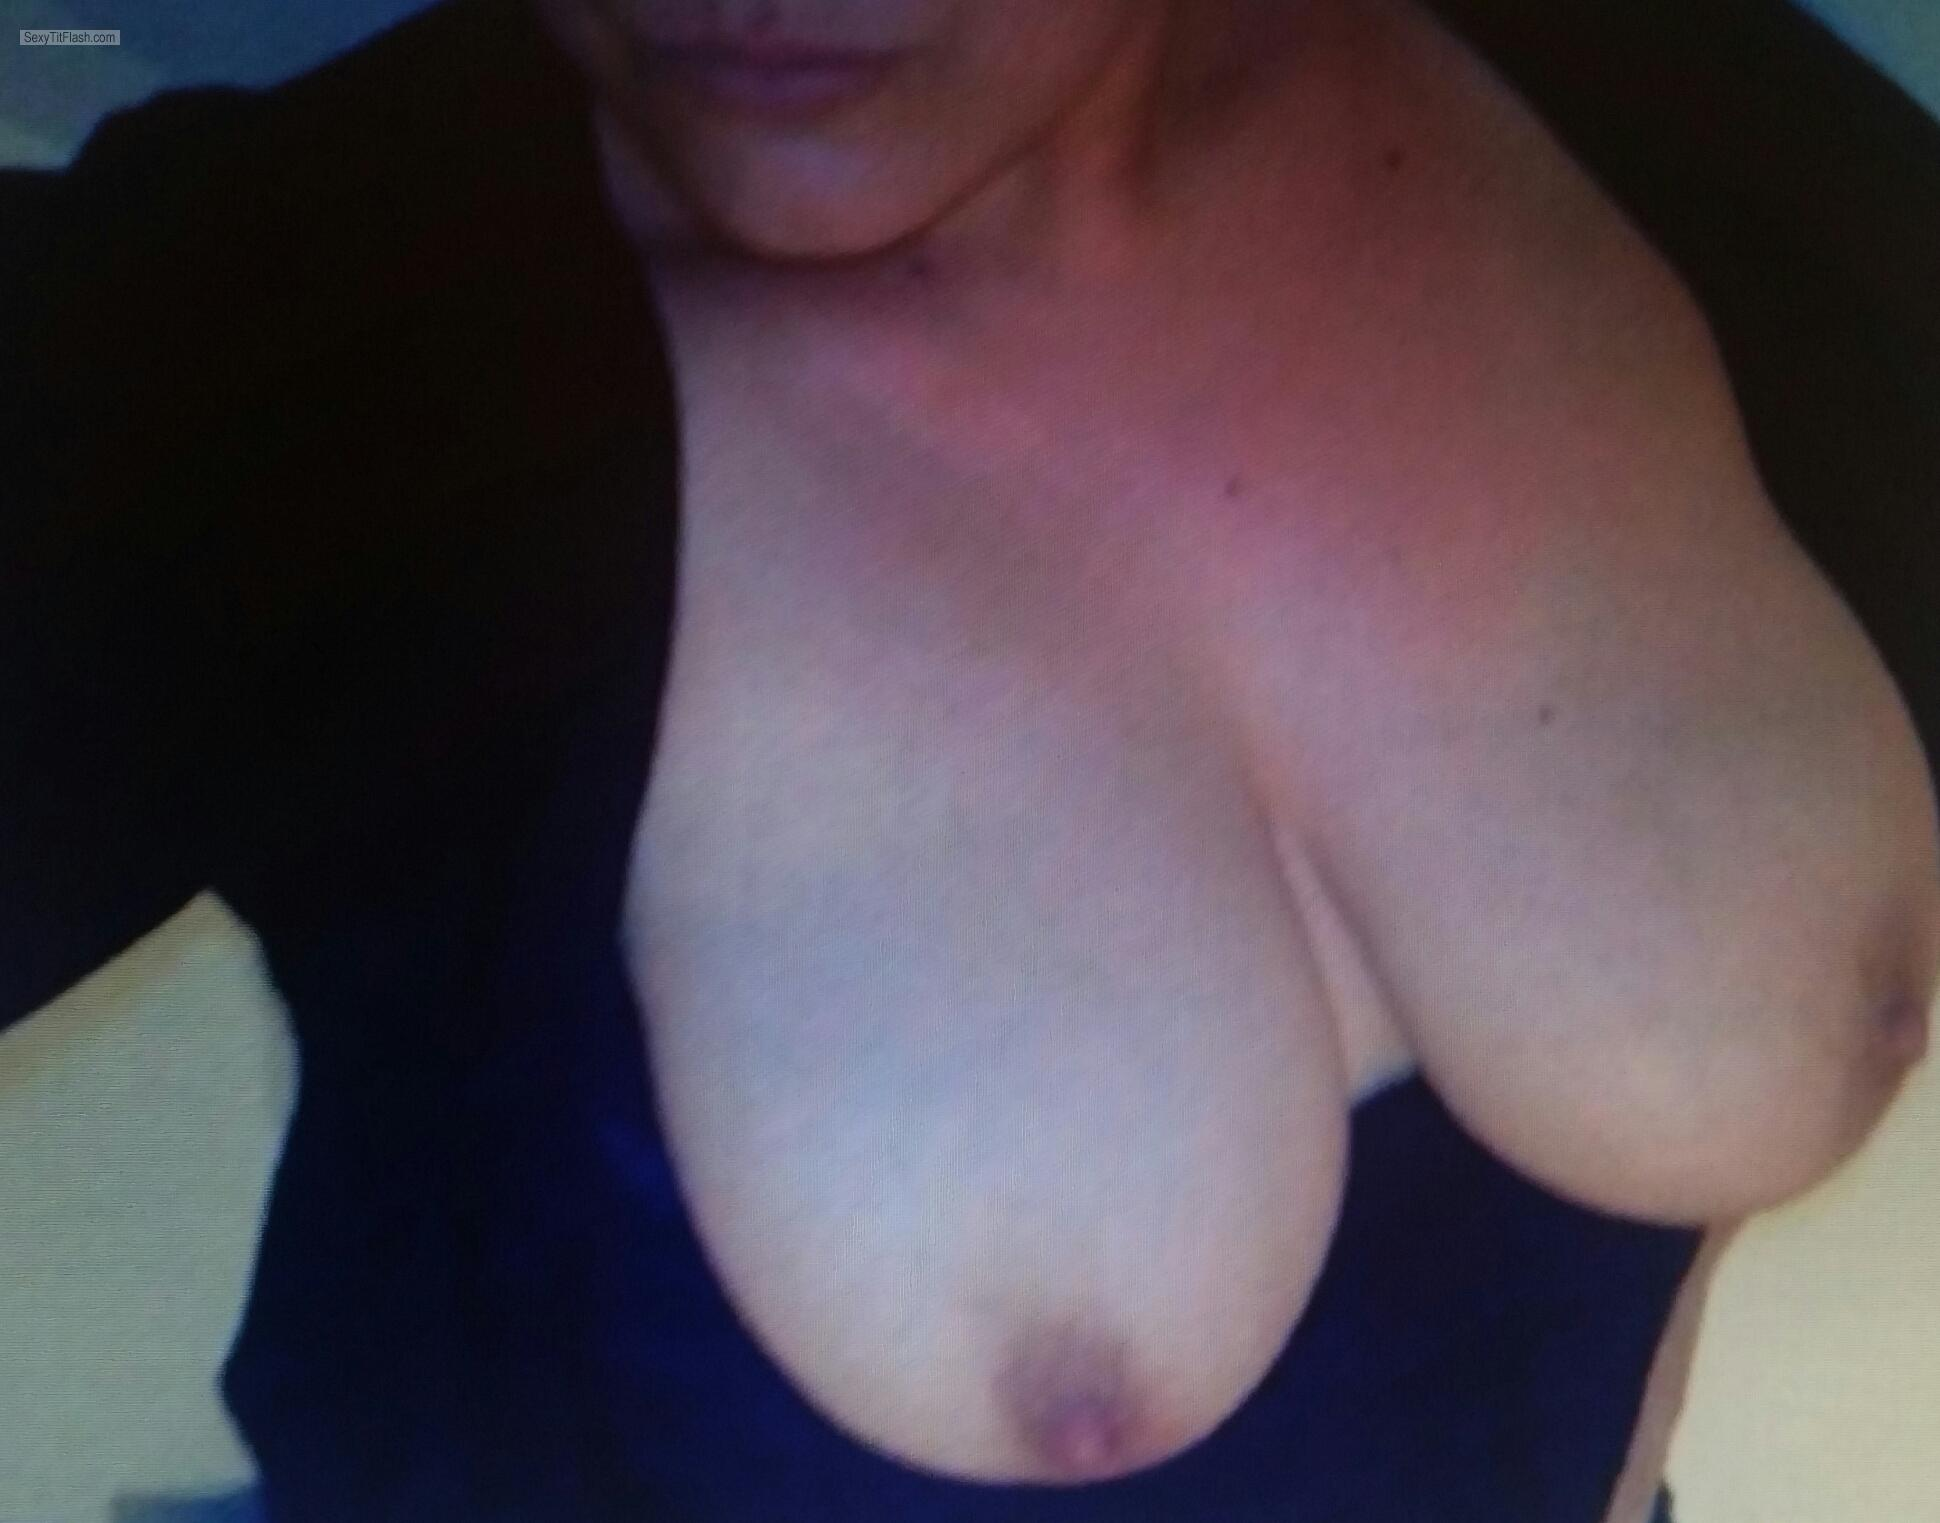 Tit Flash: My Big Tits (Selfie) - Tittenmaus from Germany